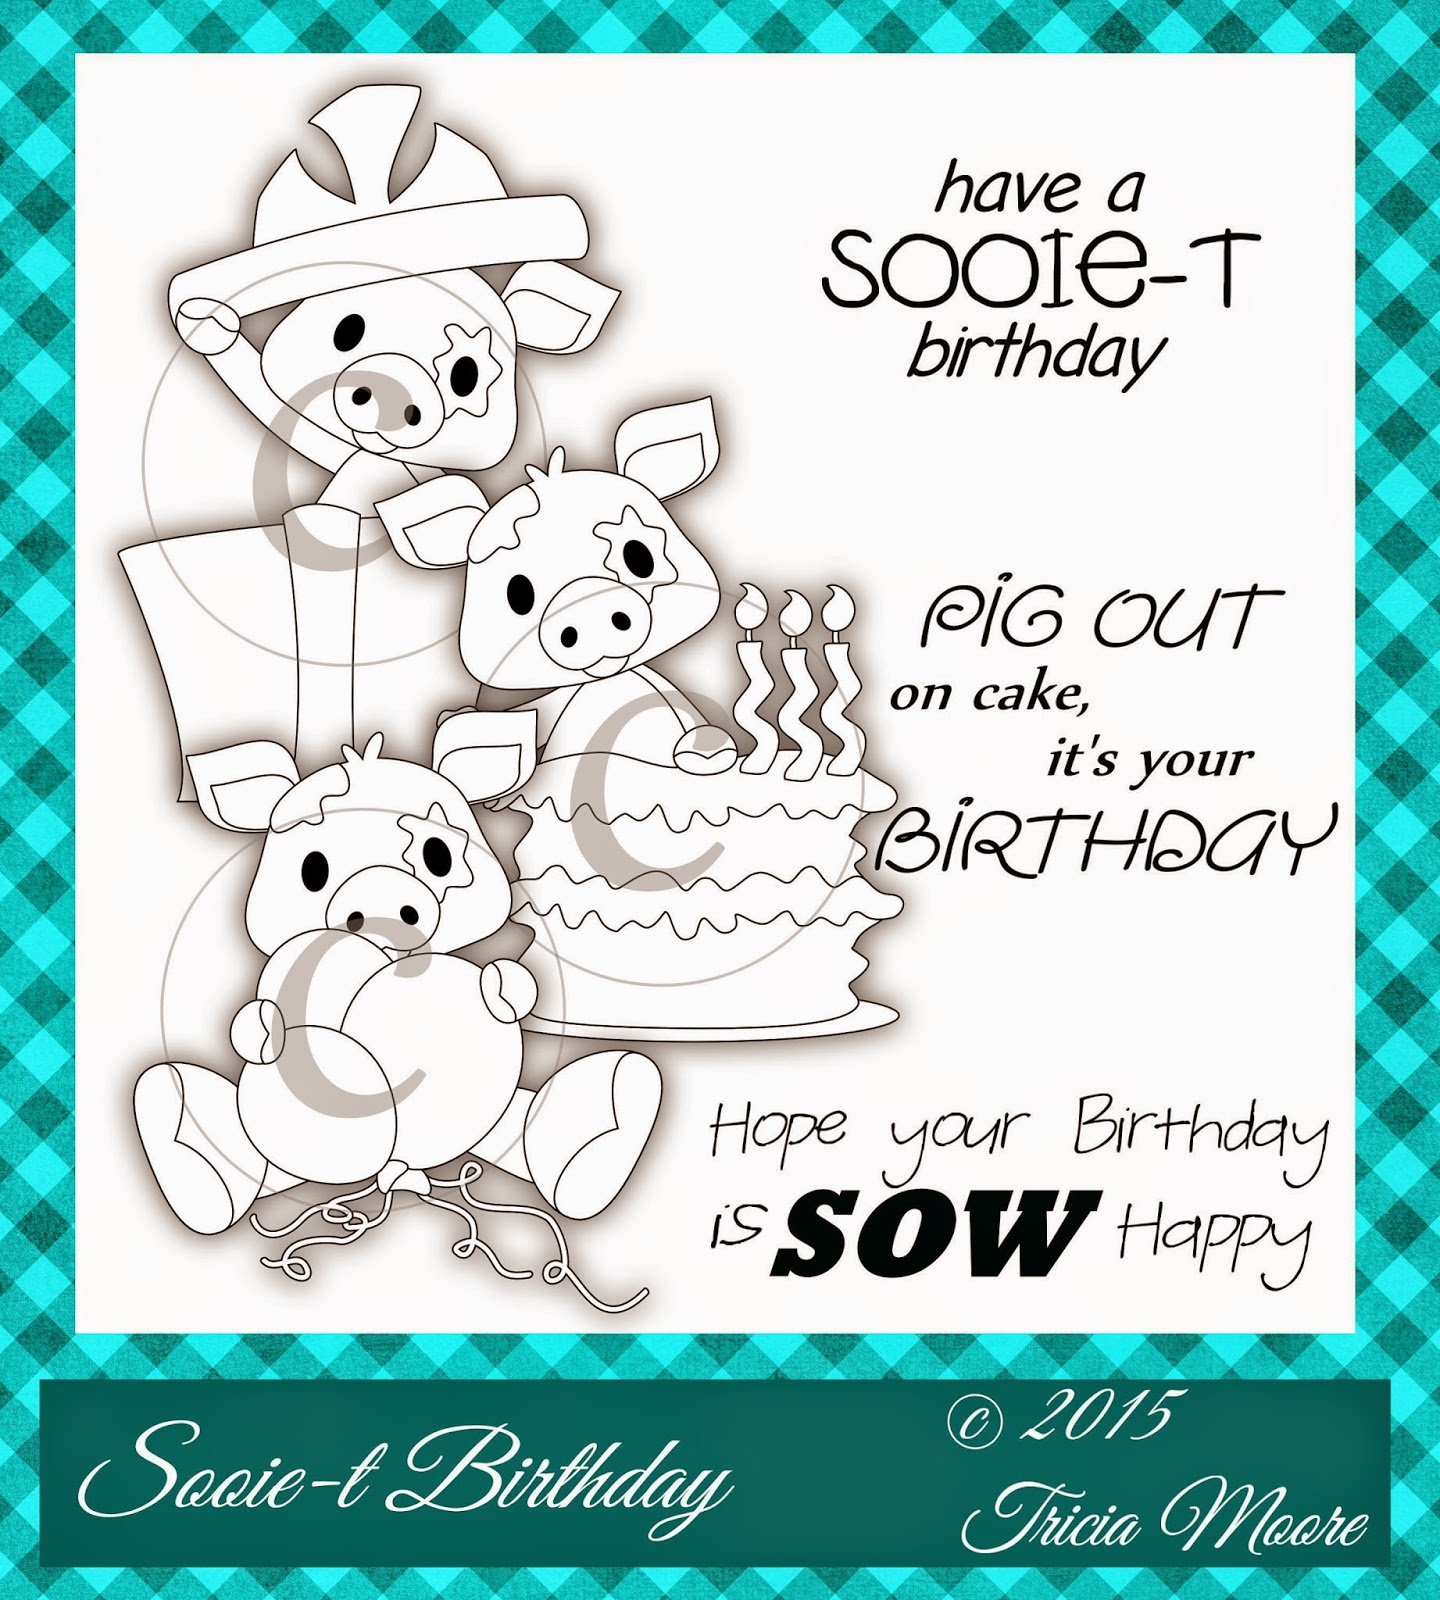 http://www.lshdigidesigns.com/item_47/ds-Sooie-t-Birthday-Set.htm